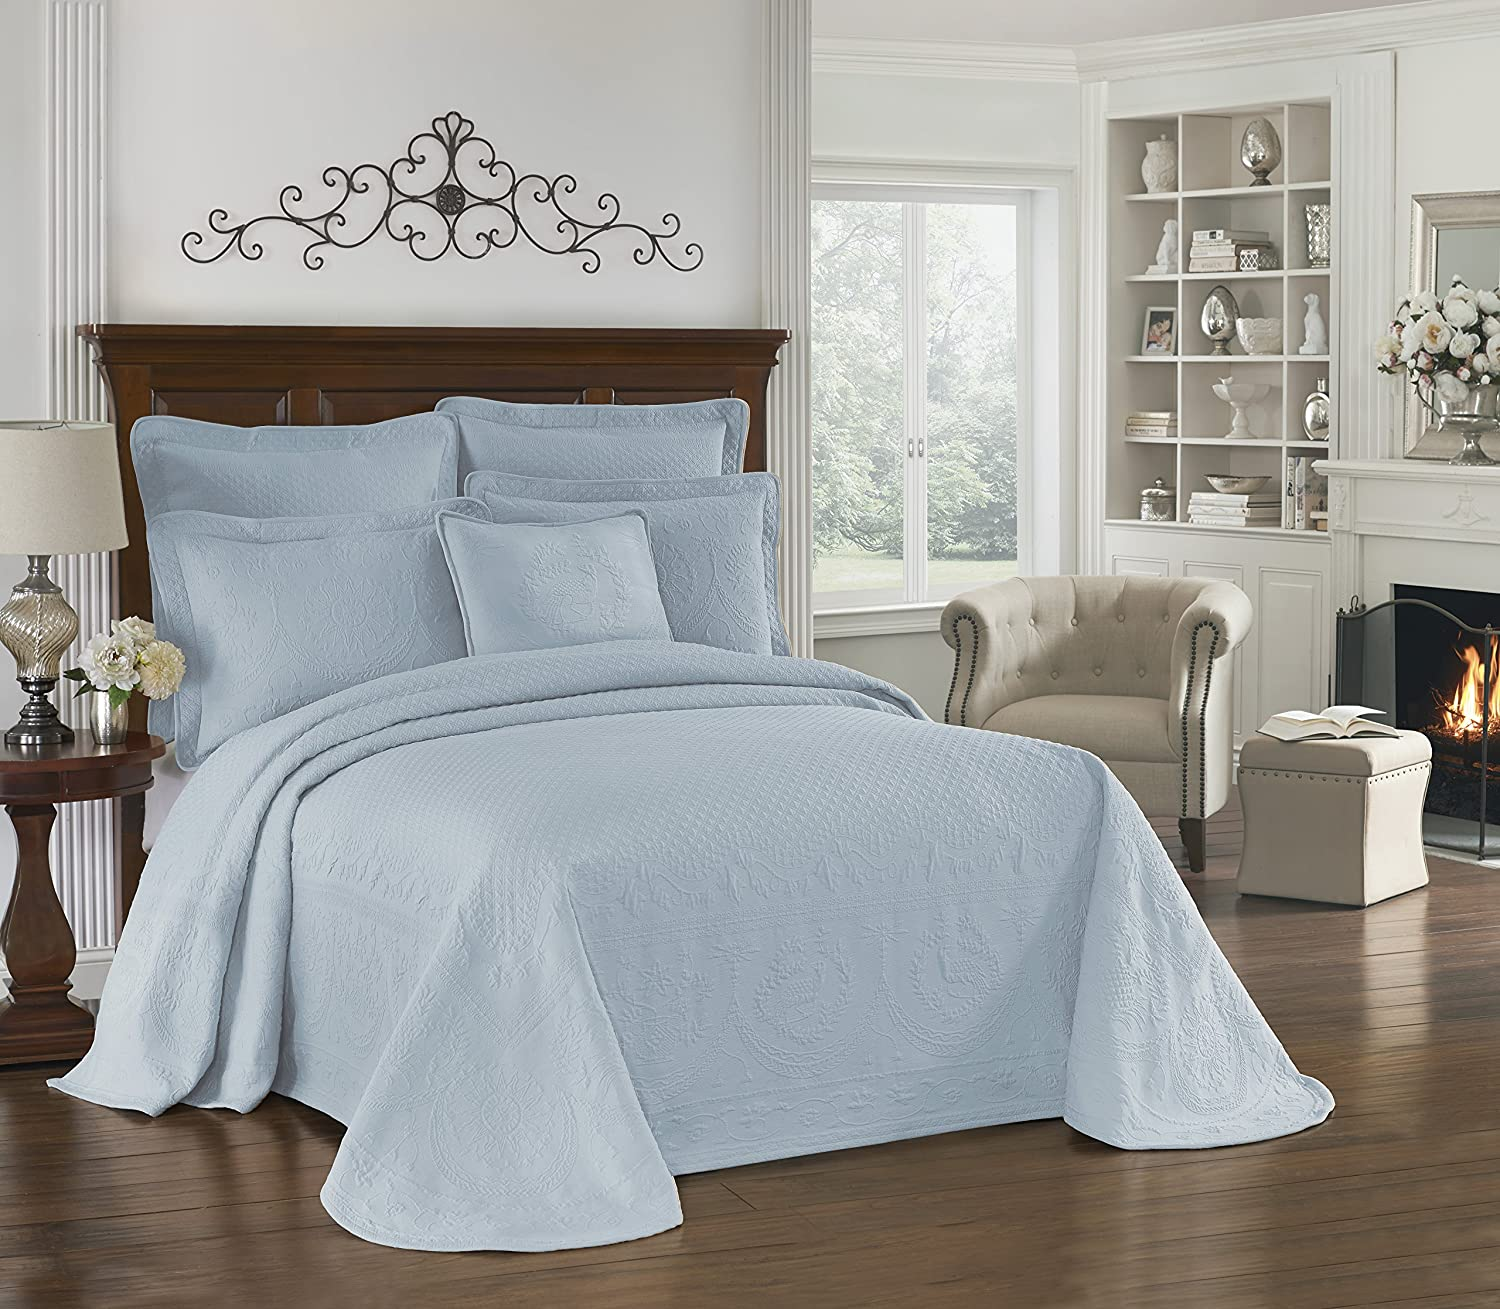 Historic Charleston 13989BEDDKNGBLU King Charles 120-Inch by 114-Inch Matelasse King Bedspread, Blue Ellery Homestyles